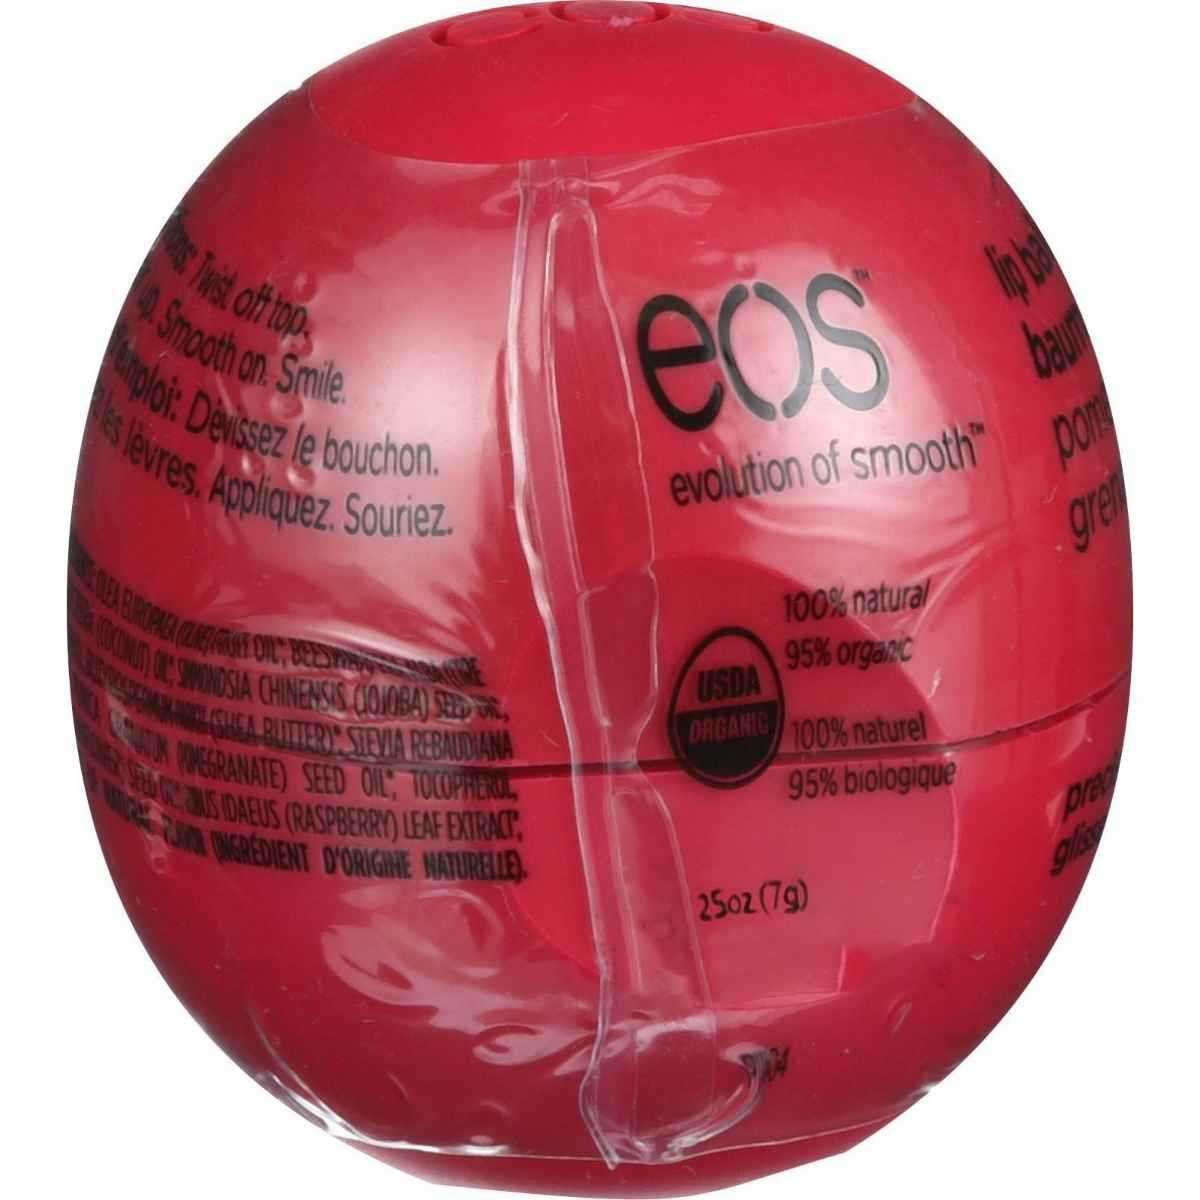 EOS Pomegranate Raspberry Smooth Sphere Lip Balm, 0.25 Ounce - 8 per case.